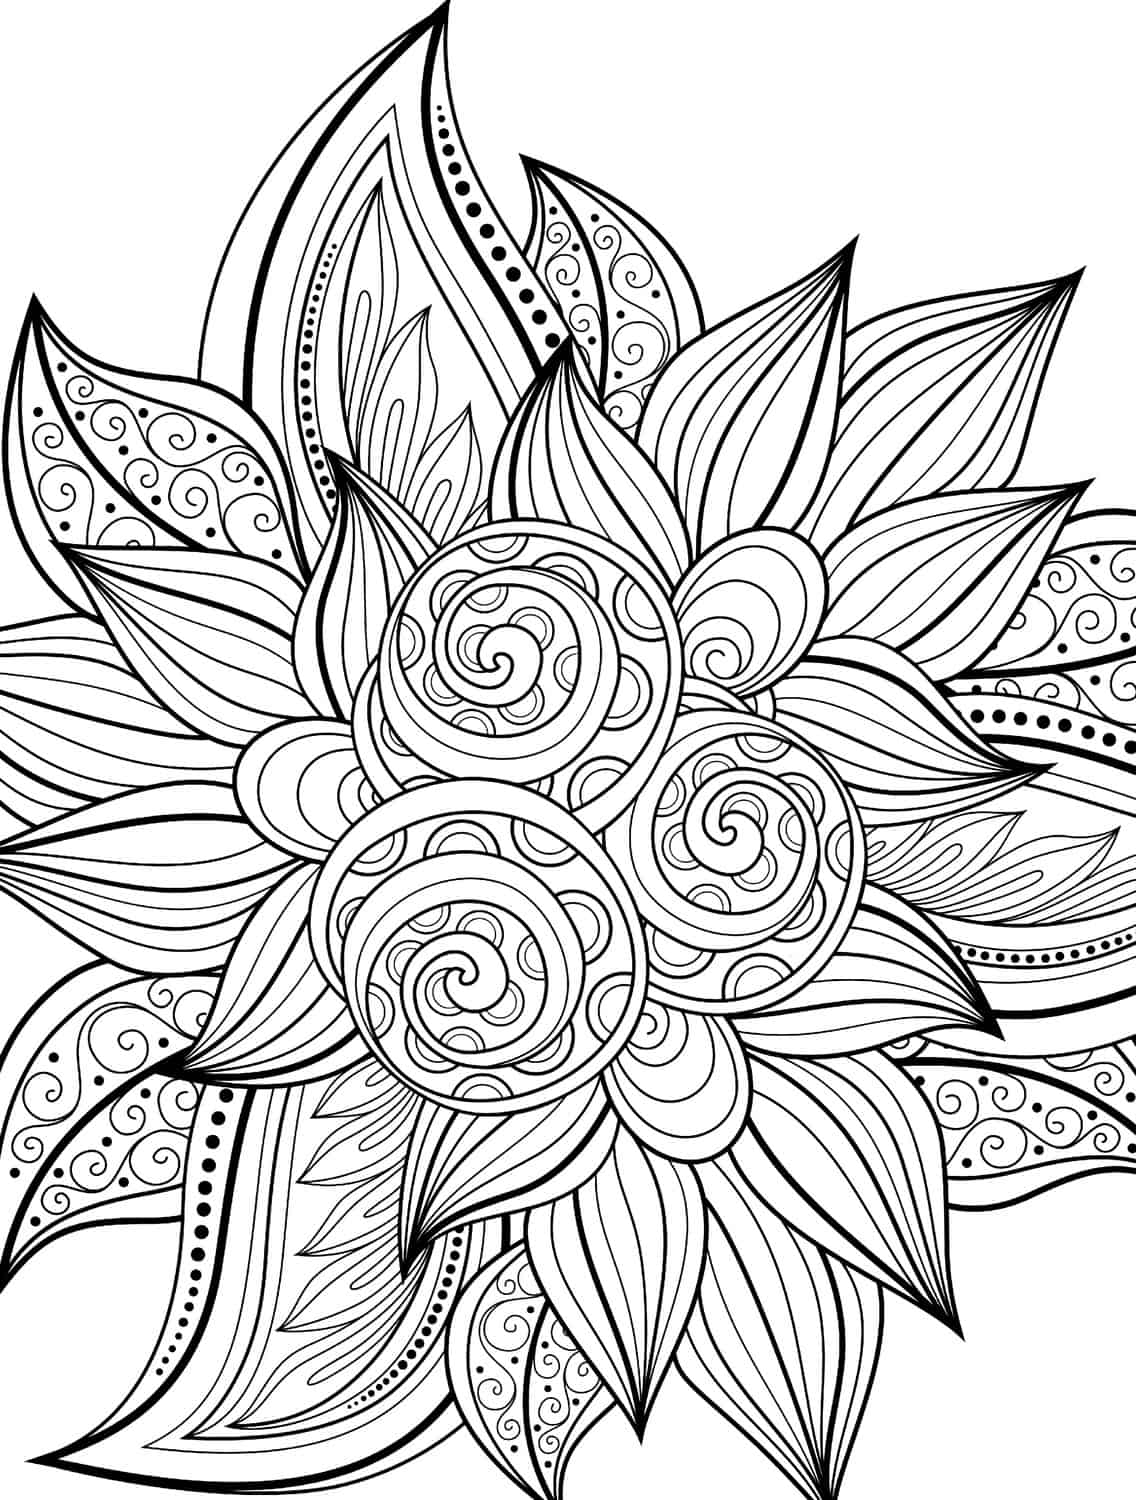 Images About Coloring Book Pages For Adults On